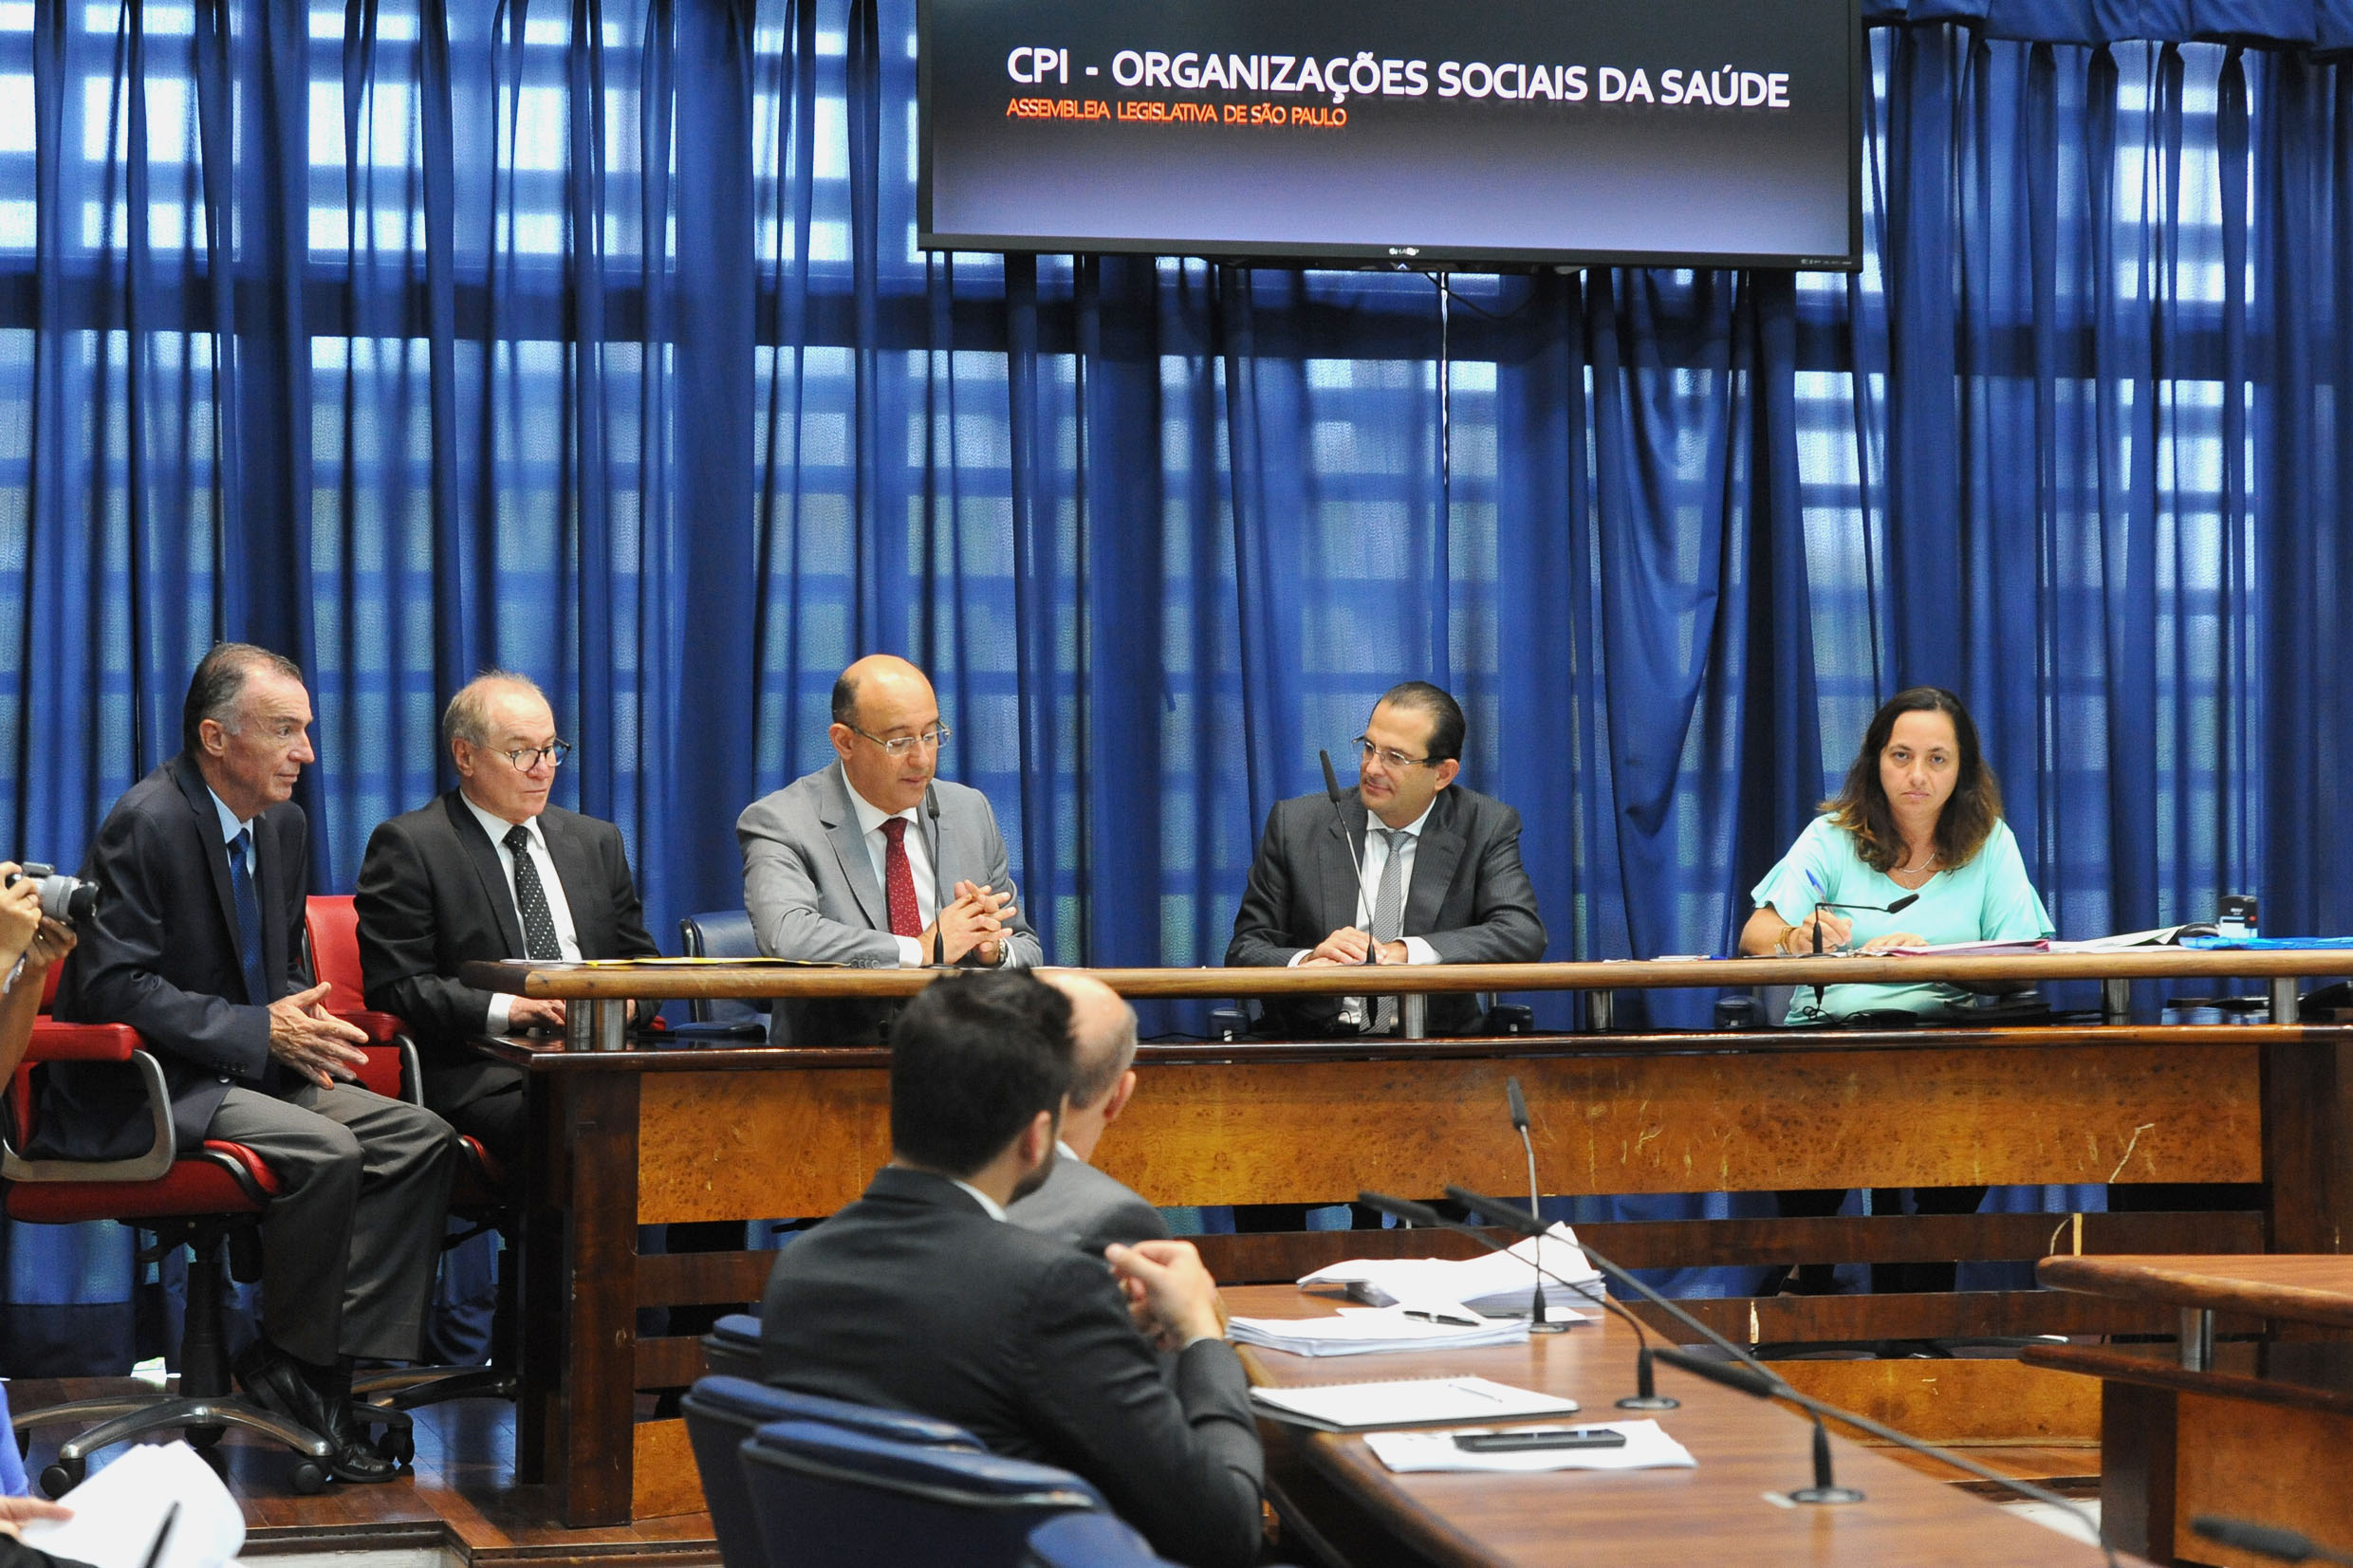 Edmir Chedid preside a CPI<a style='float:right' href='https://www3.al.sp.gov.br/repositorio/noticia/N-06-2018/fg224628.jpg' target=_blank><img src='/_img/material-file-download-white.png' width='14px' alt='Clique para baixar a imagem'></a>